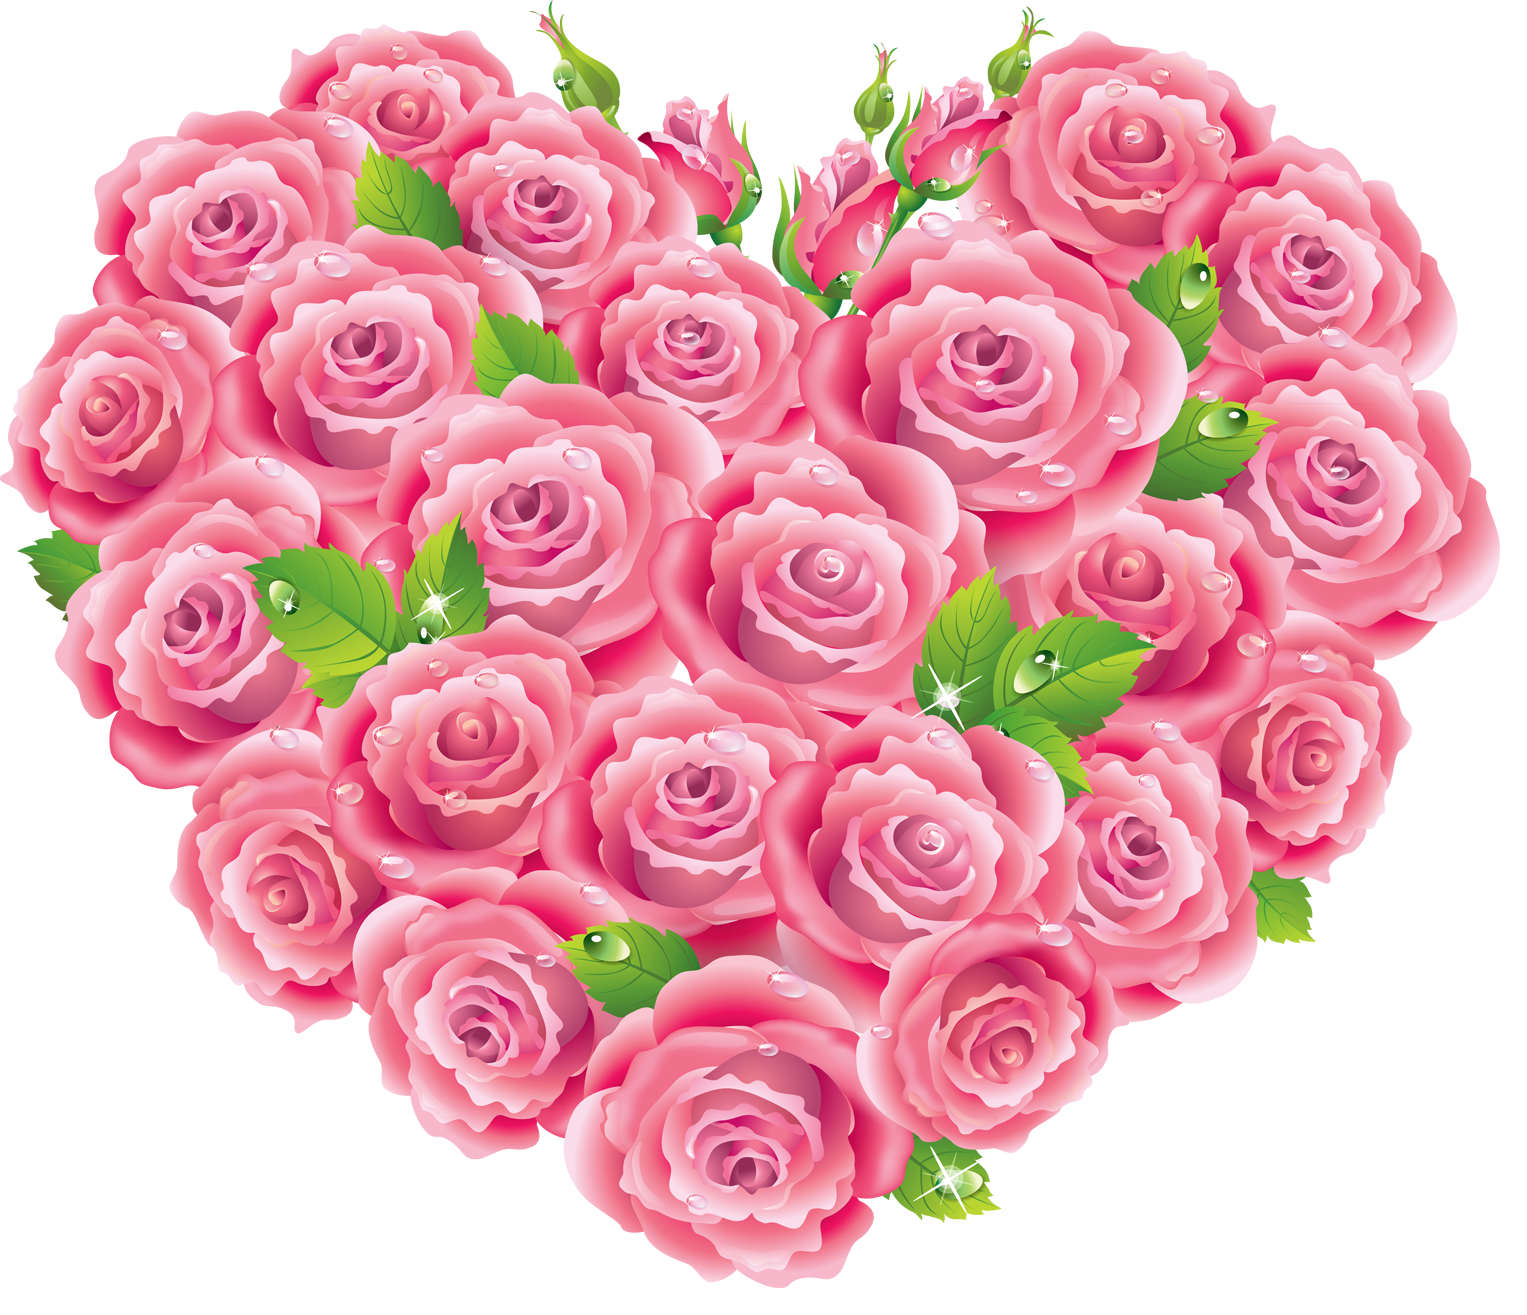 Pink roses heart gallery. Hearts clipart food